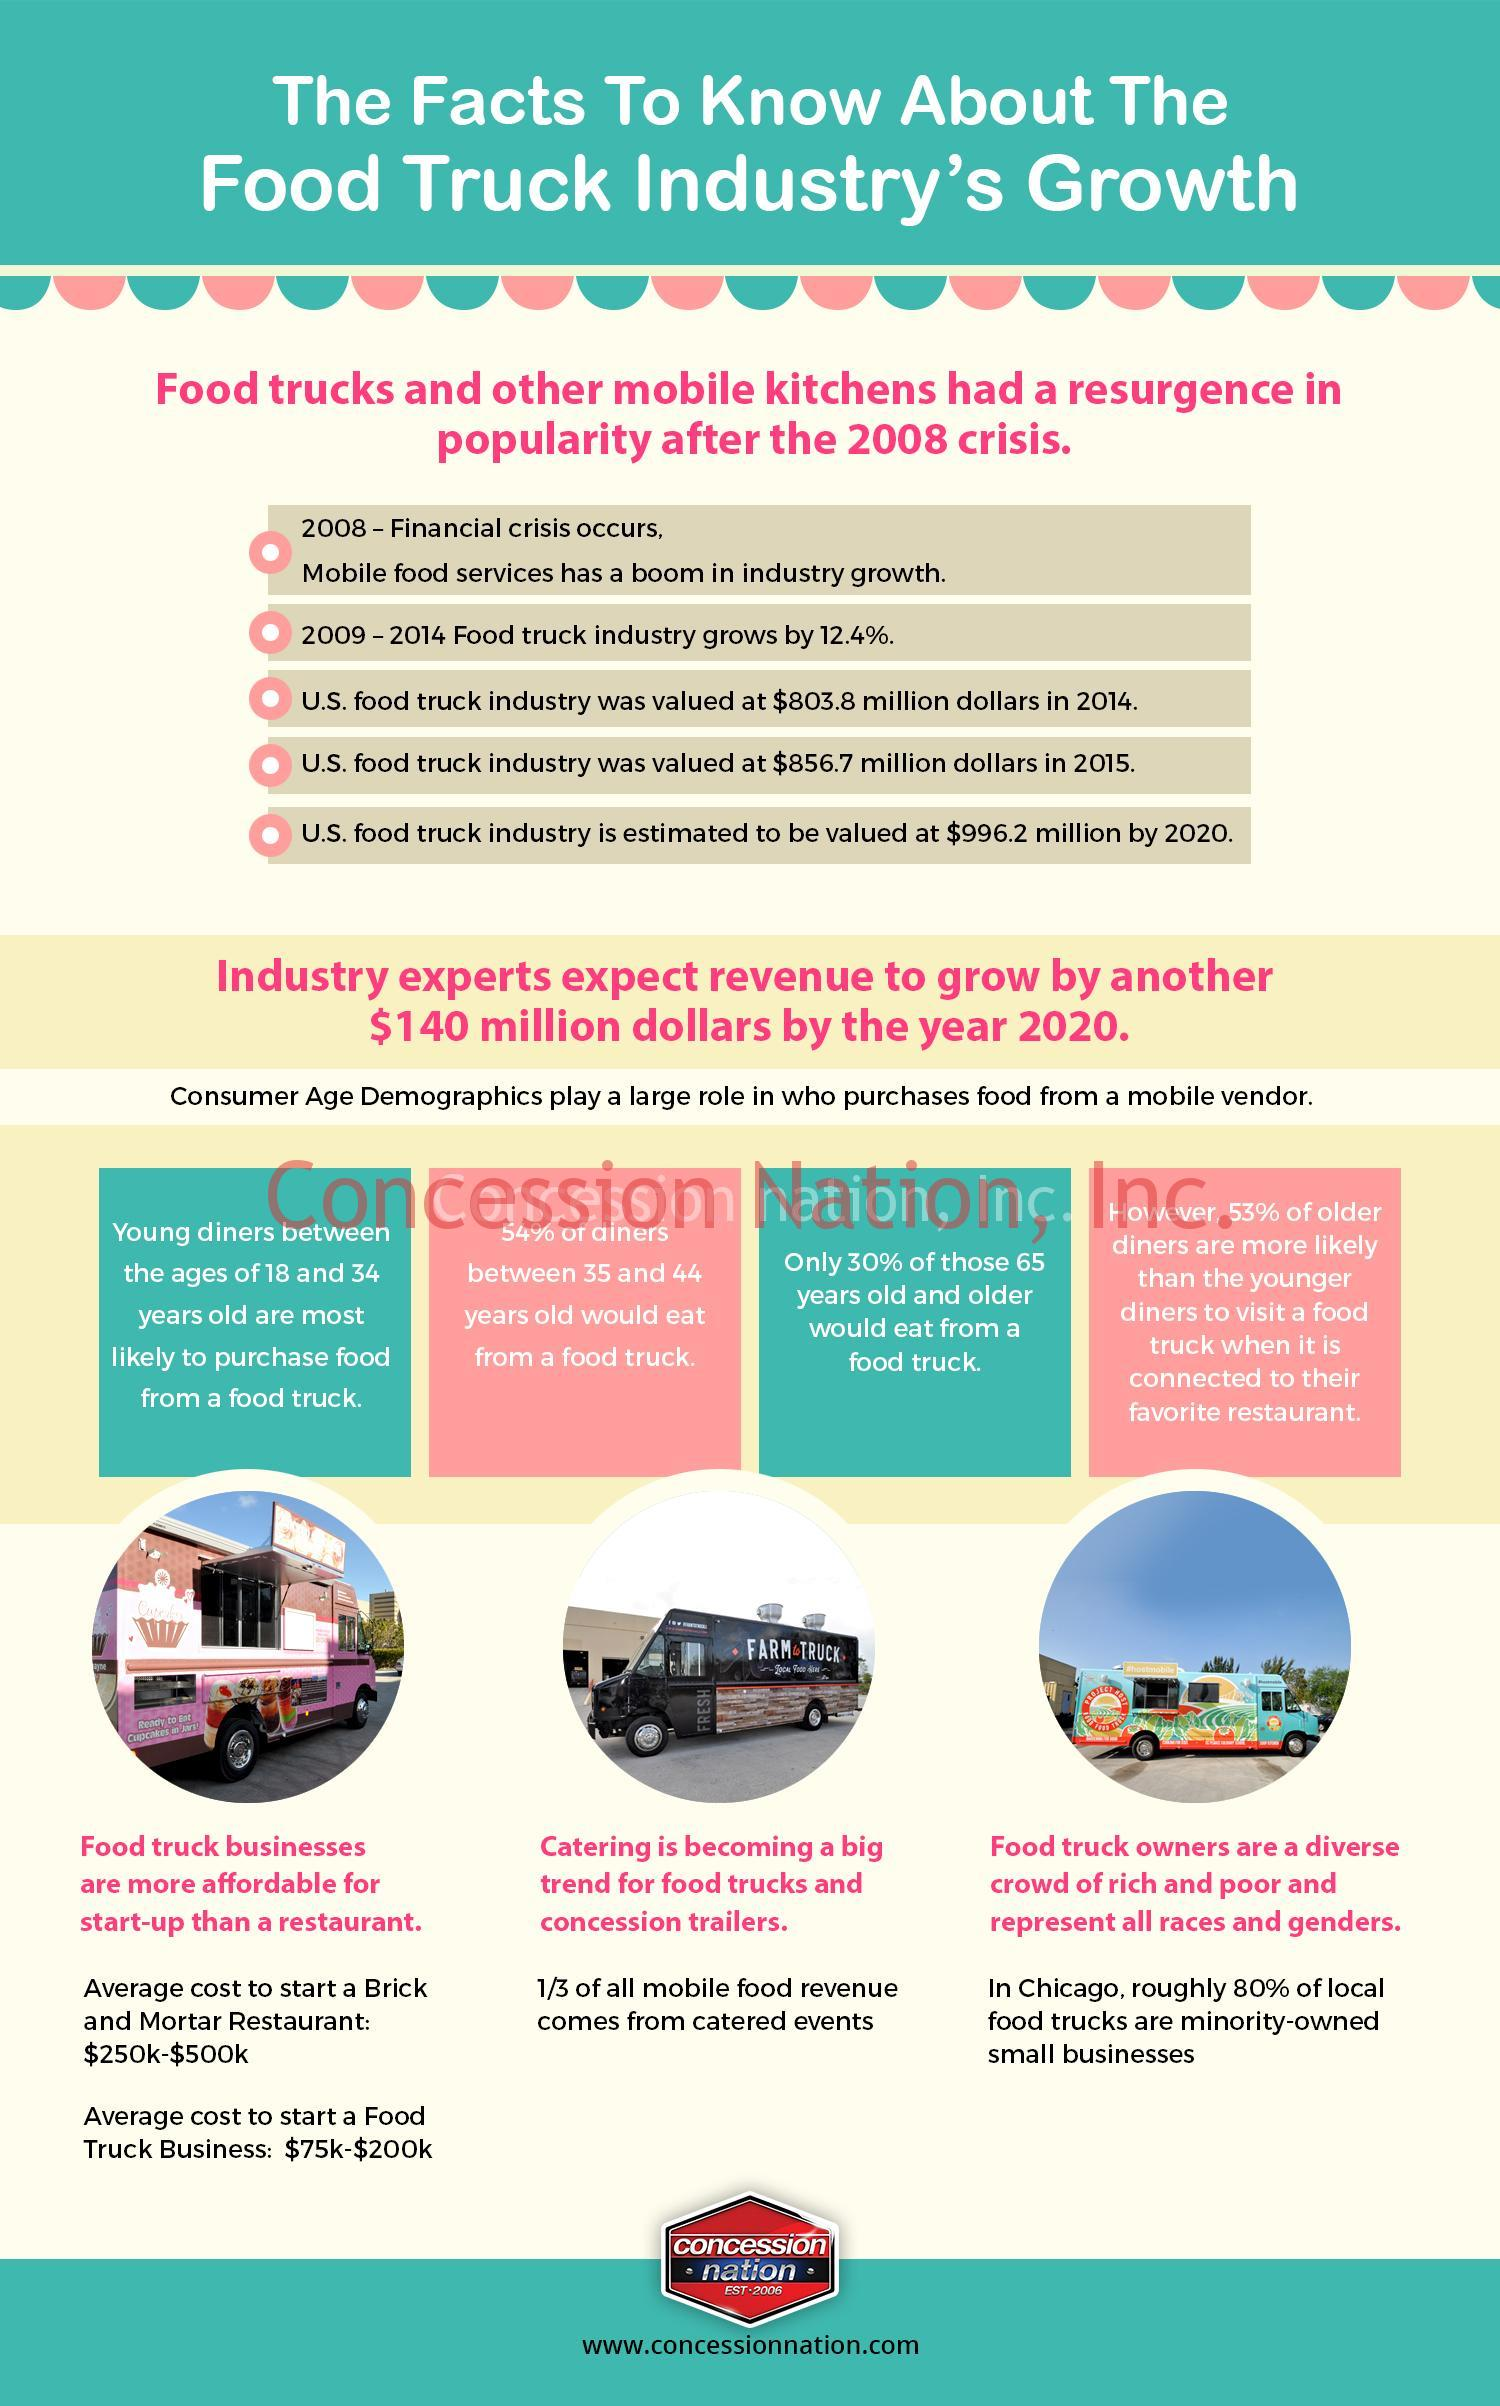 The Facts To Know About The Food Truck Industry S Growth